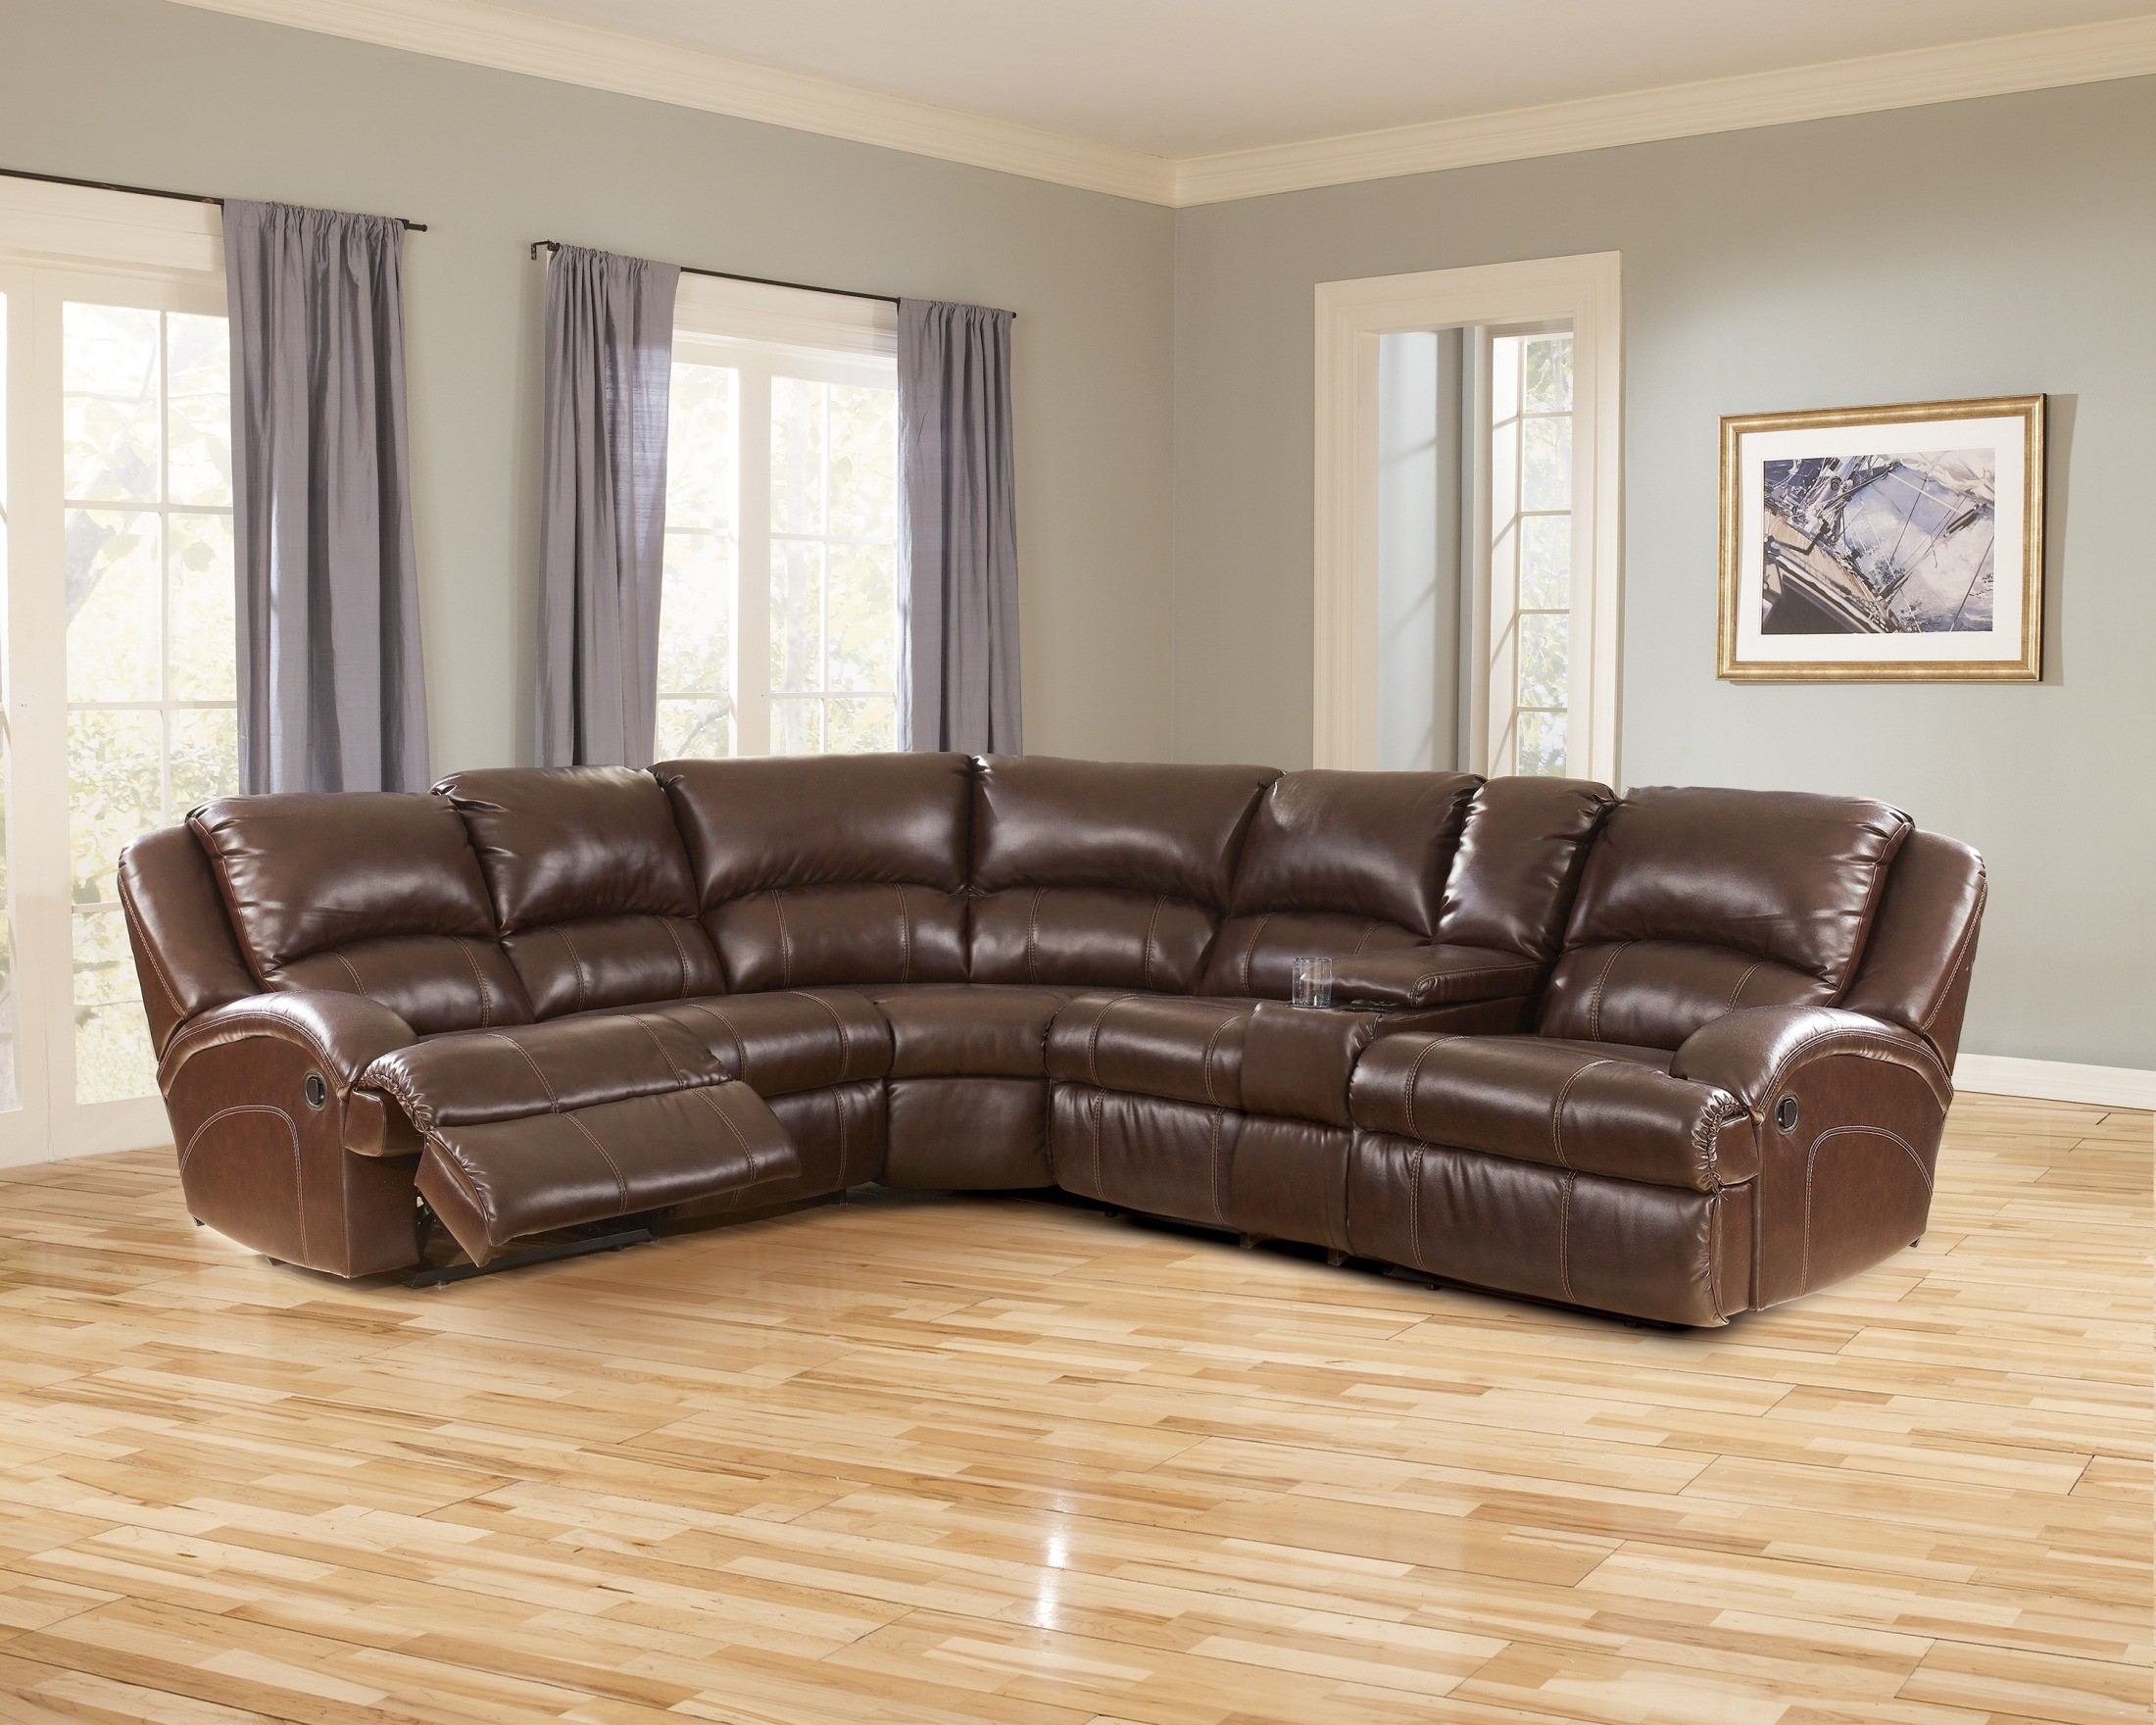 DuraBlend Harness Sectional 51801 Ashley Furniture